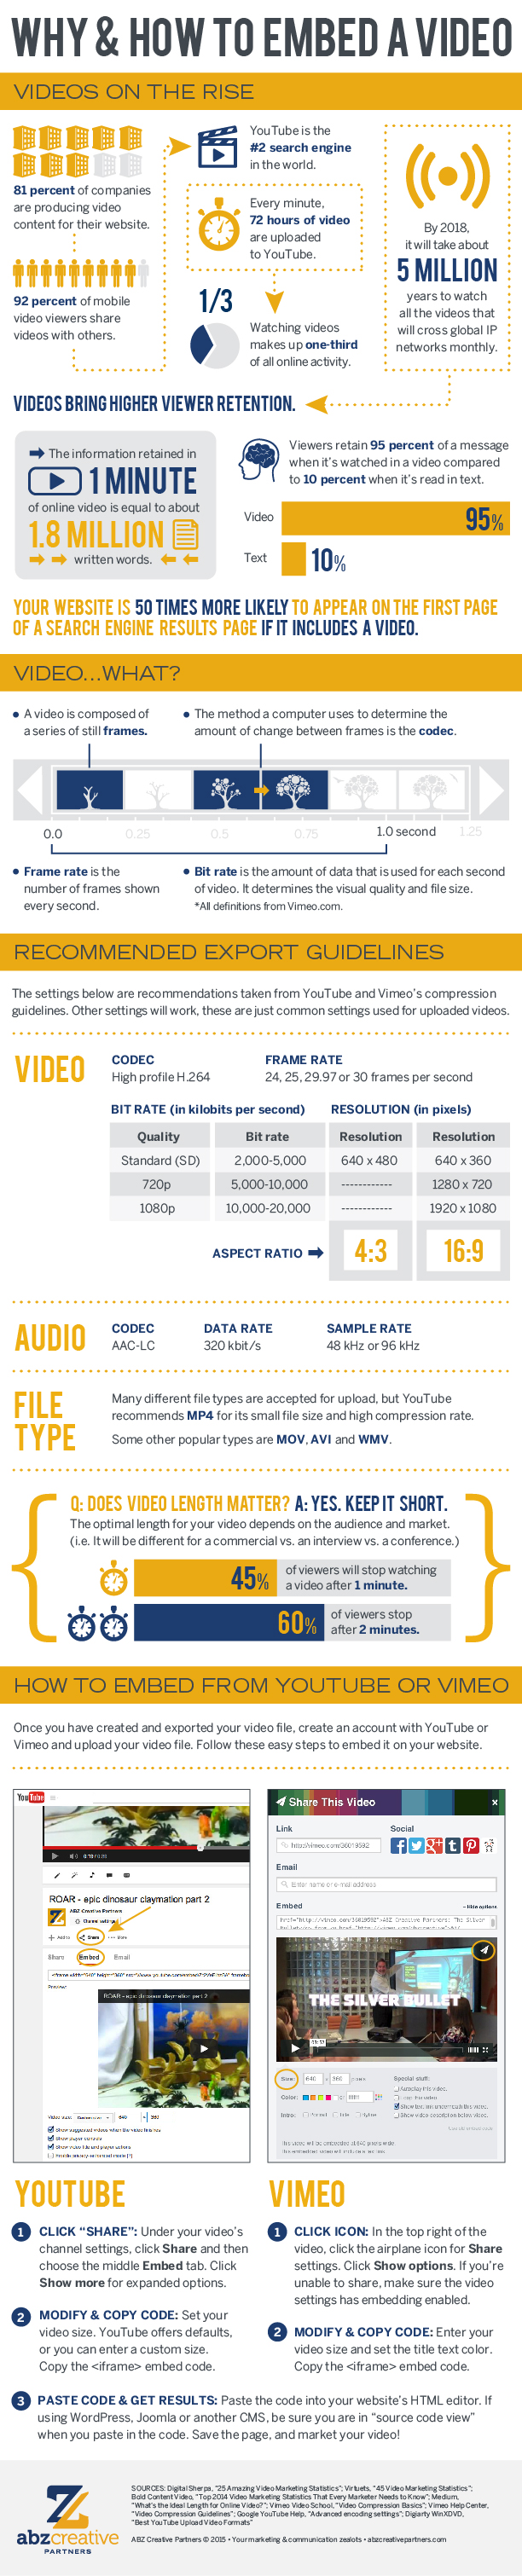 Infographic with embedded video